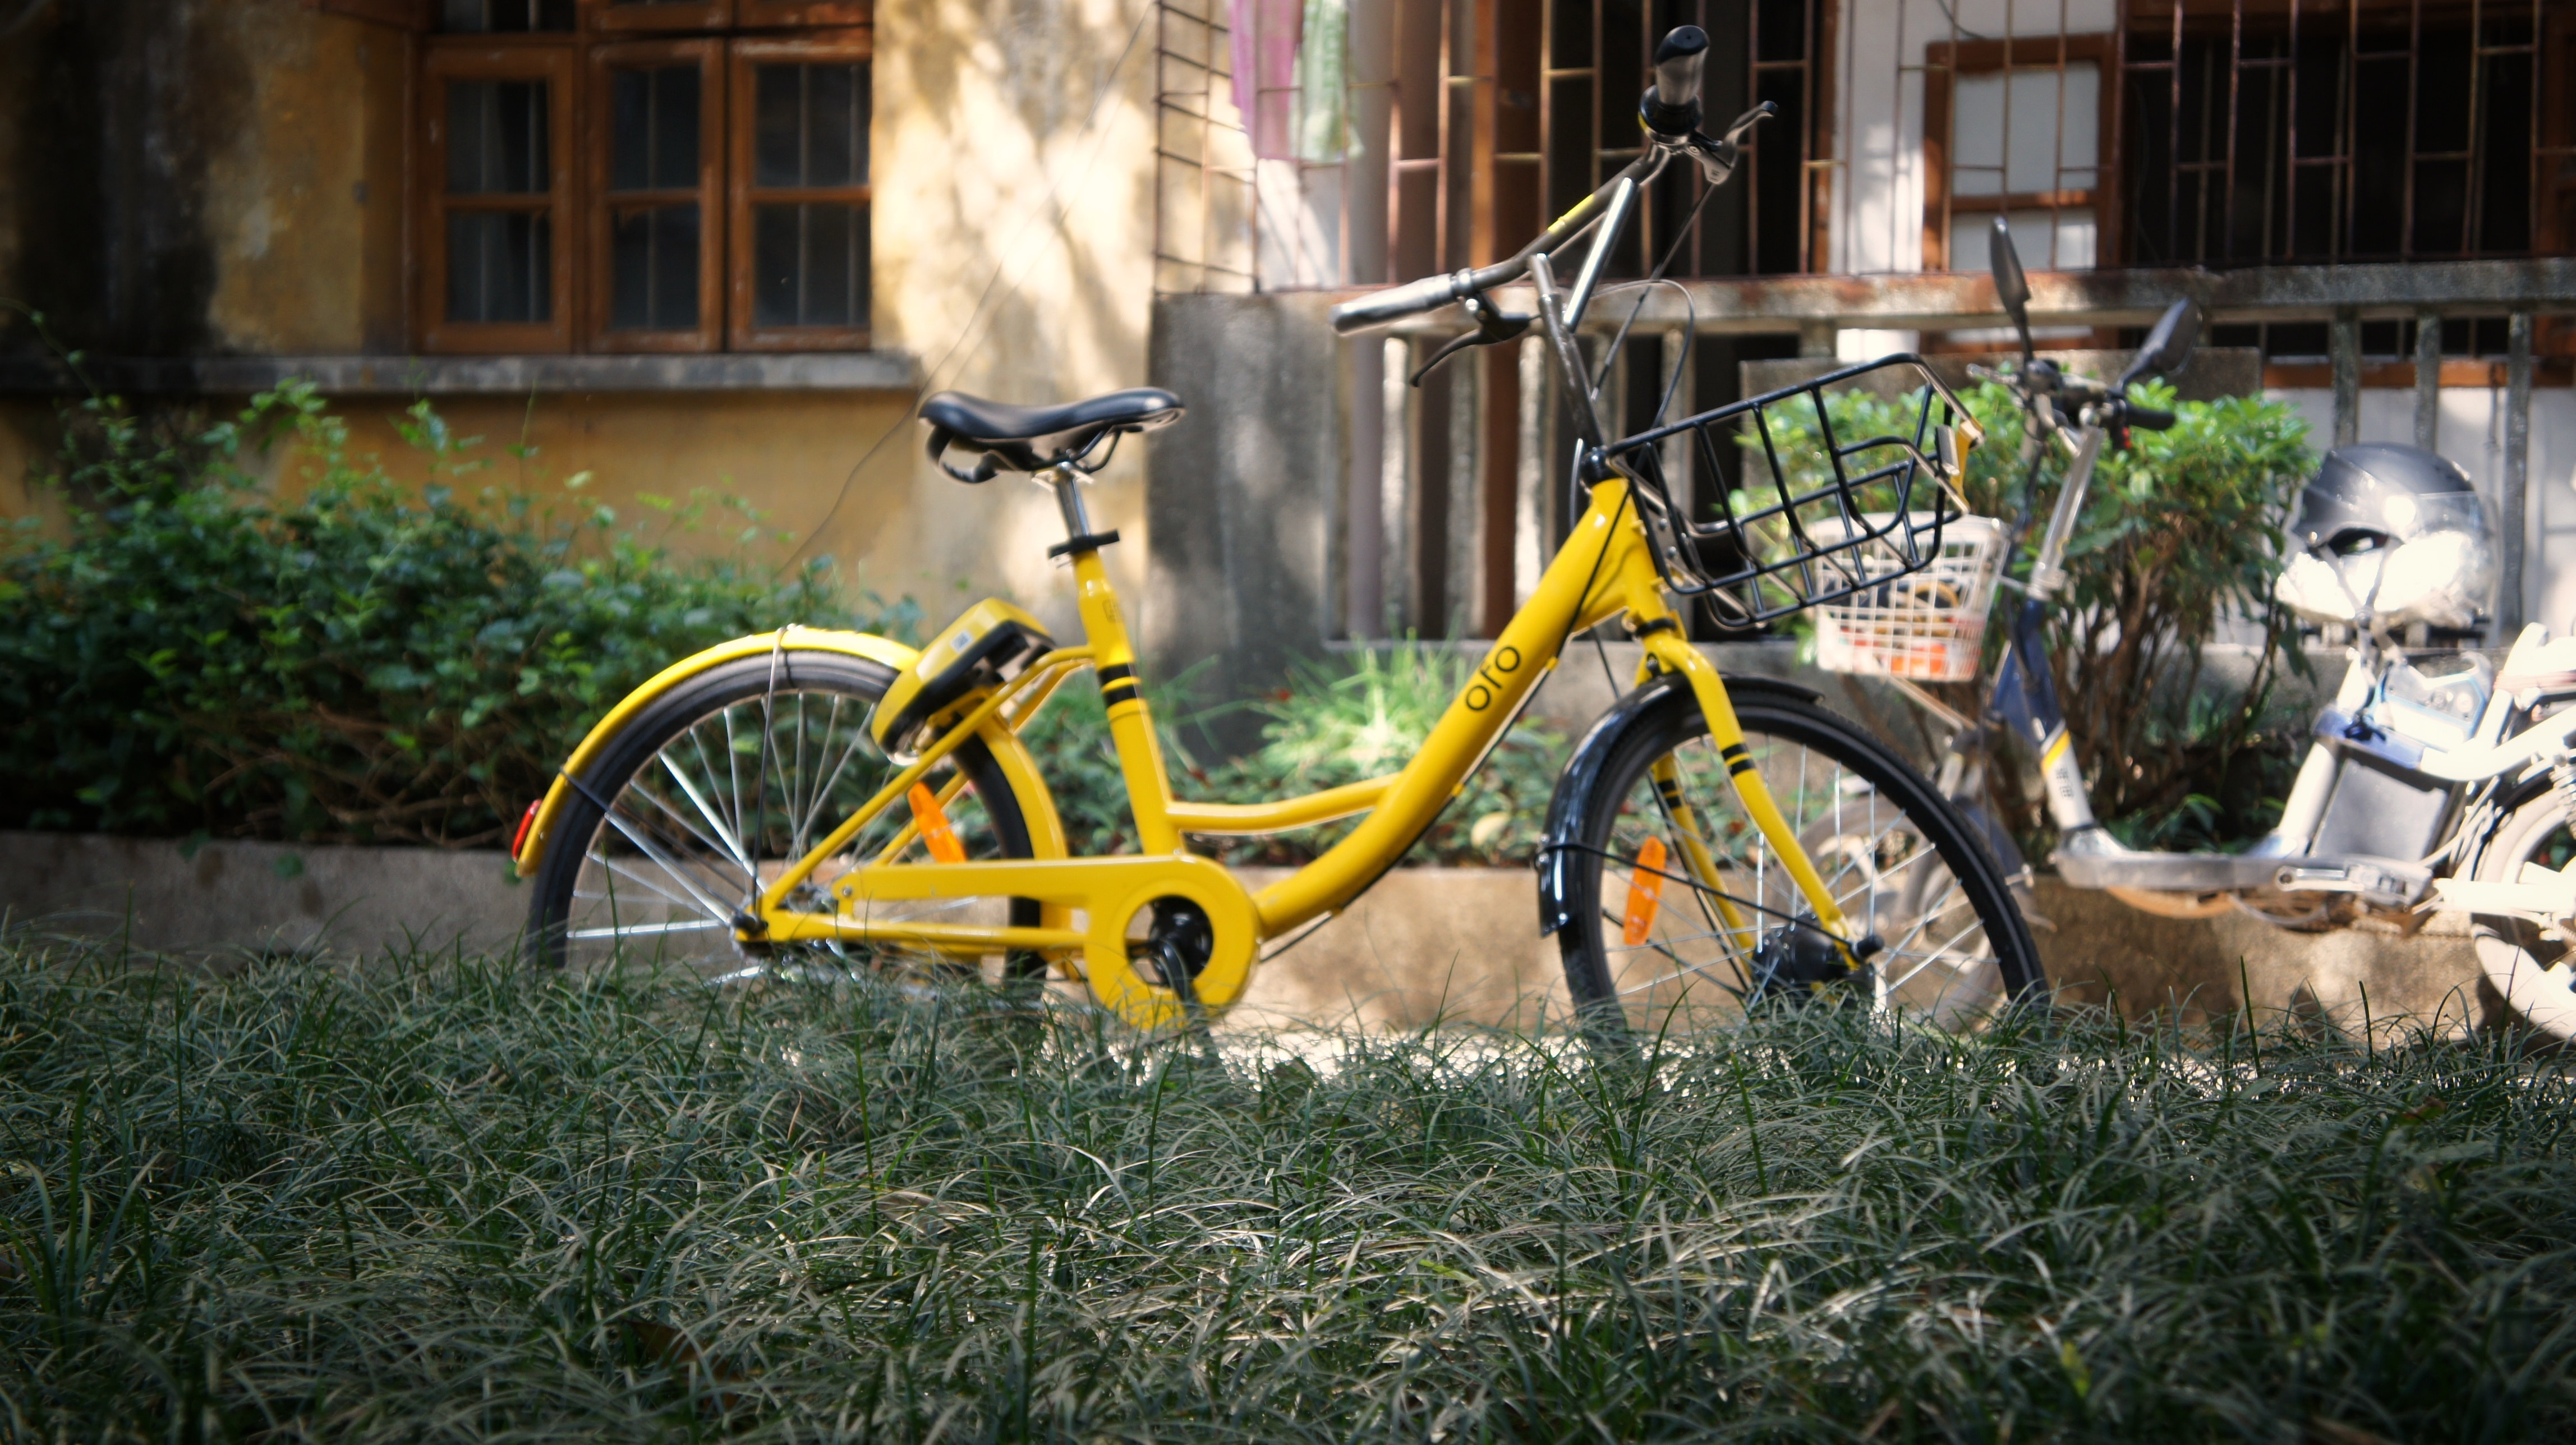 yellow city bicycle on grass during daytime